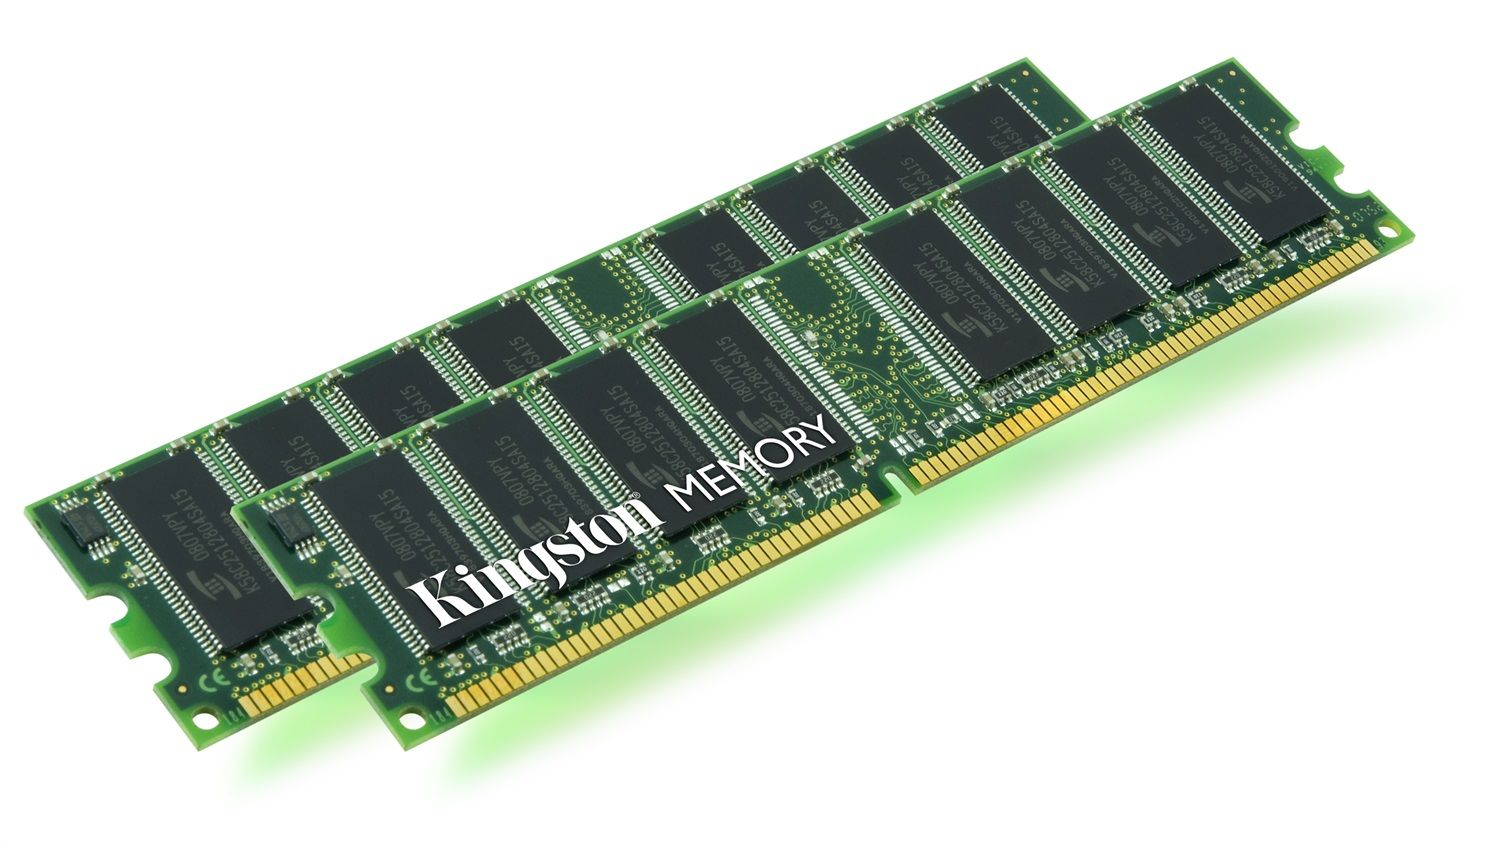 Kingston KTD-DM8400/1G